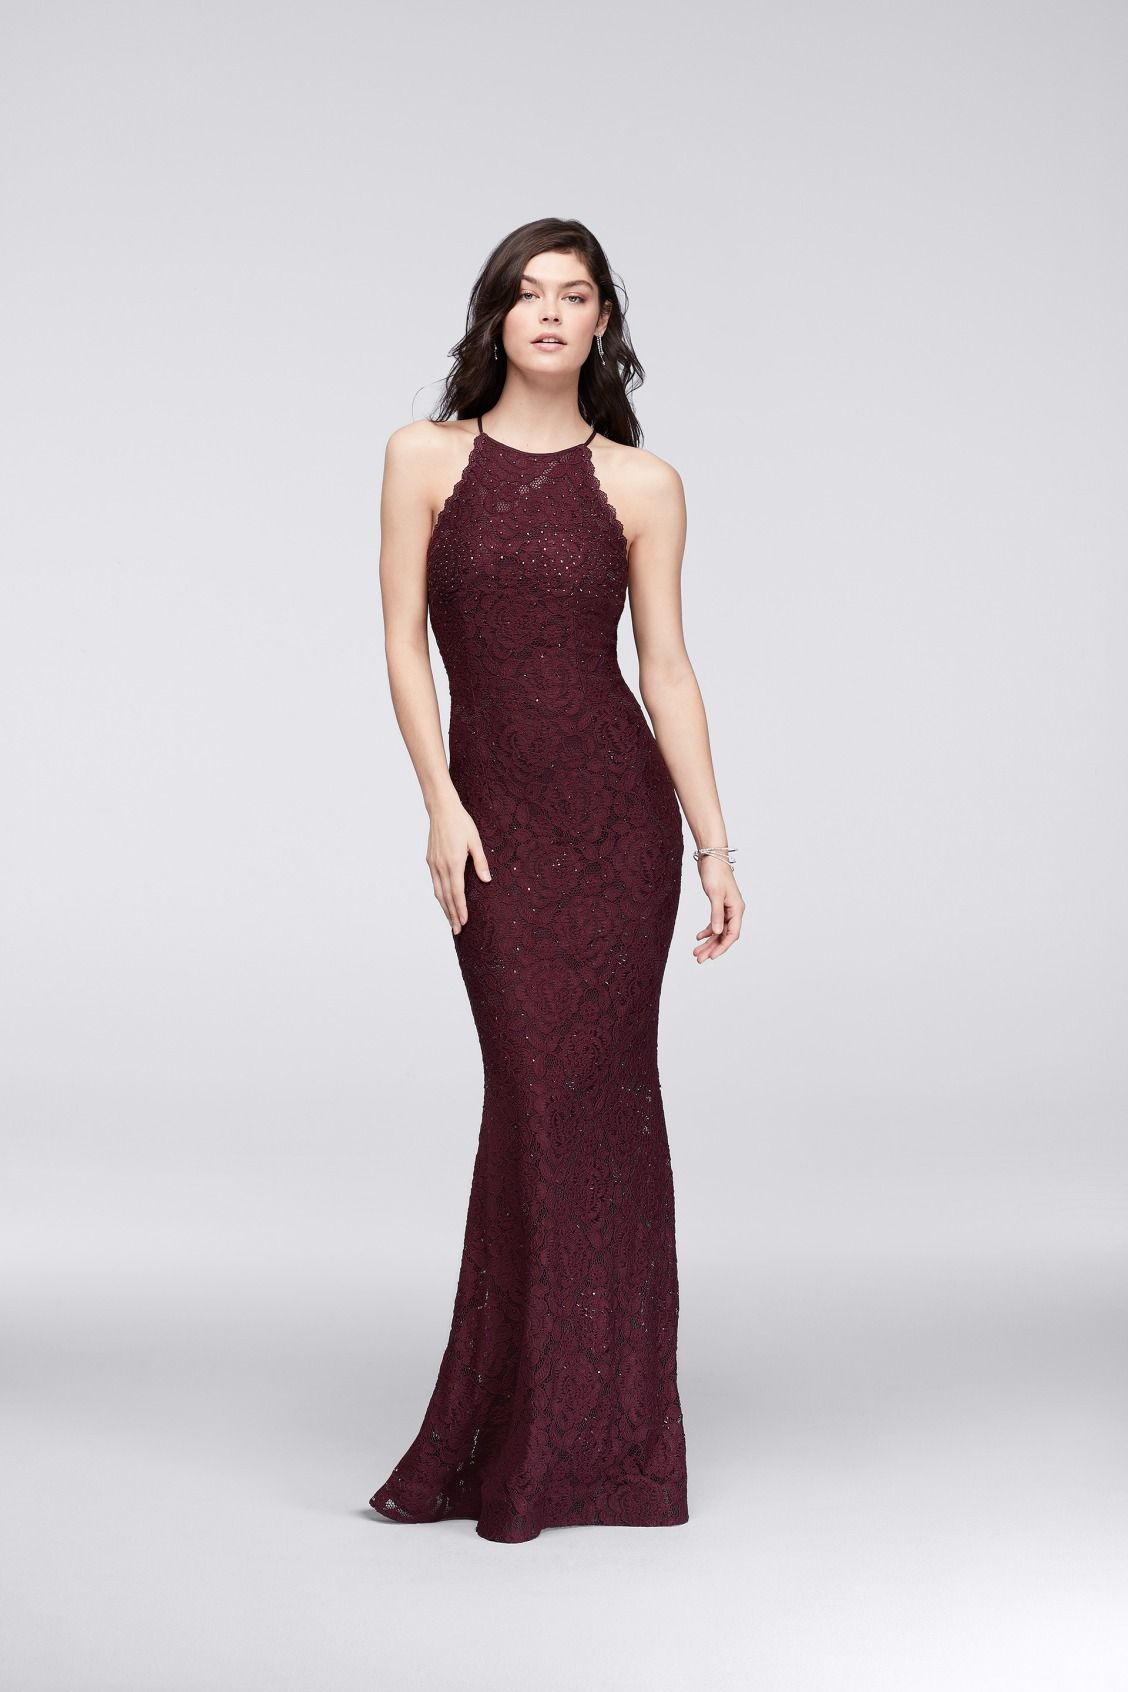 7e9198f6377 Deep burgundy hues are the it color this prom season. Allover Lace Halter  Dress with Crystal Beading by Betsy   Adam available at David s Bridal